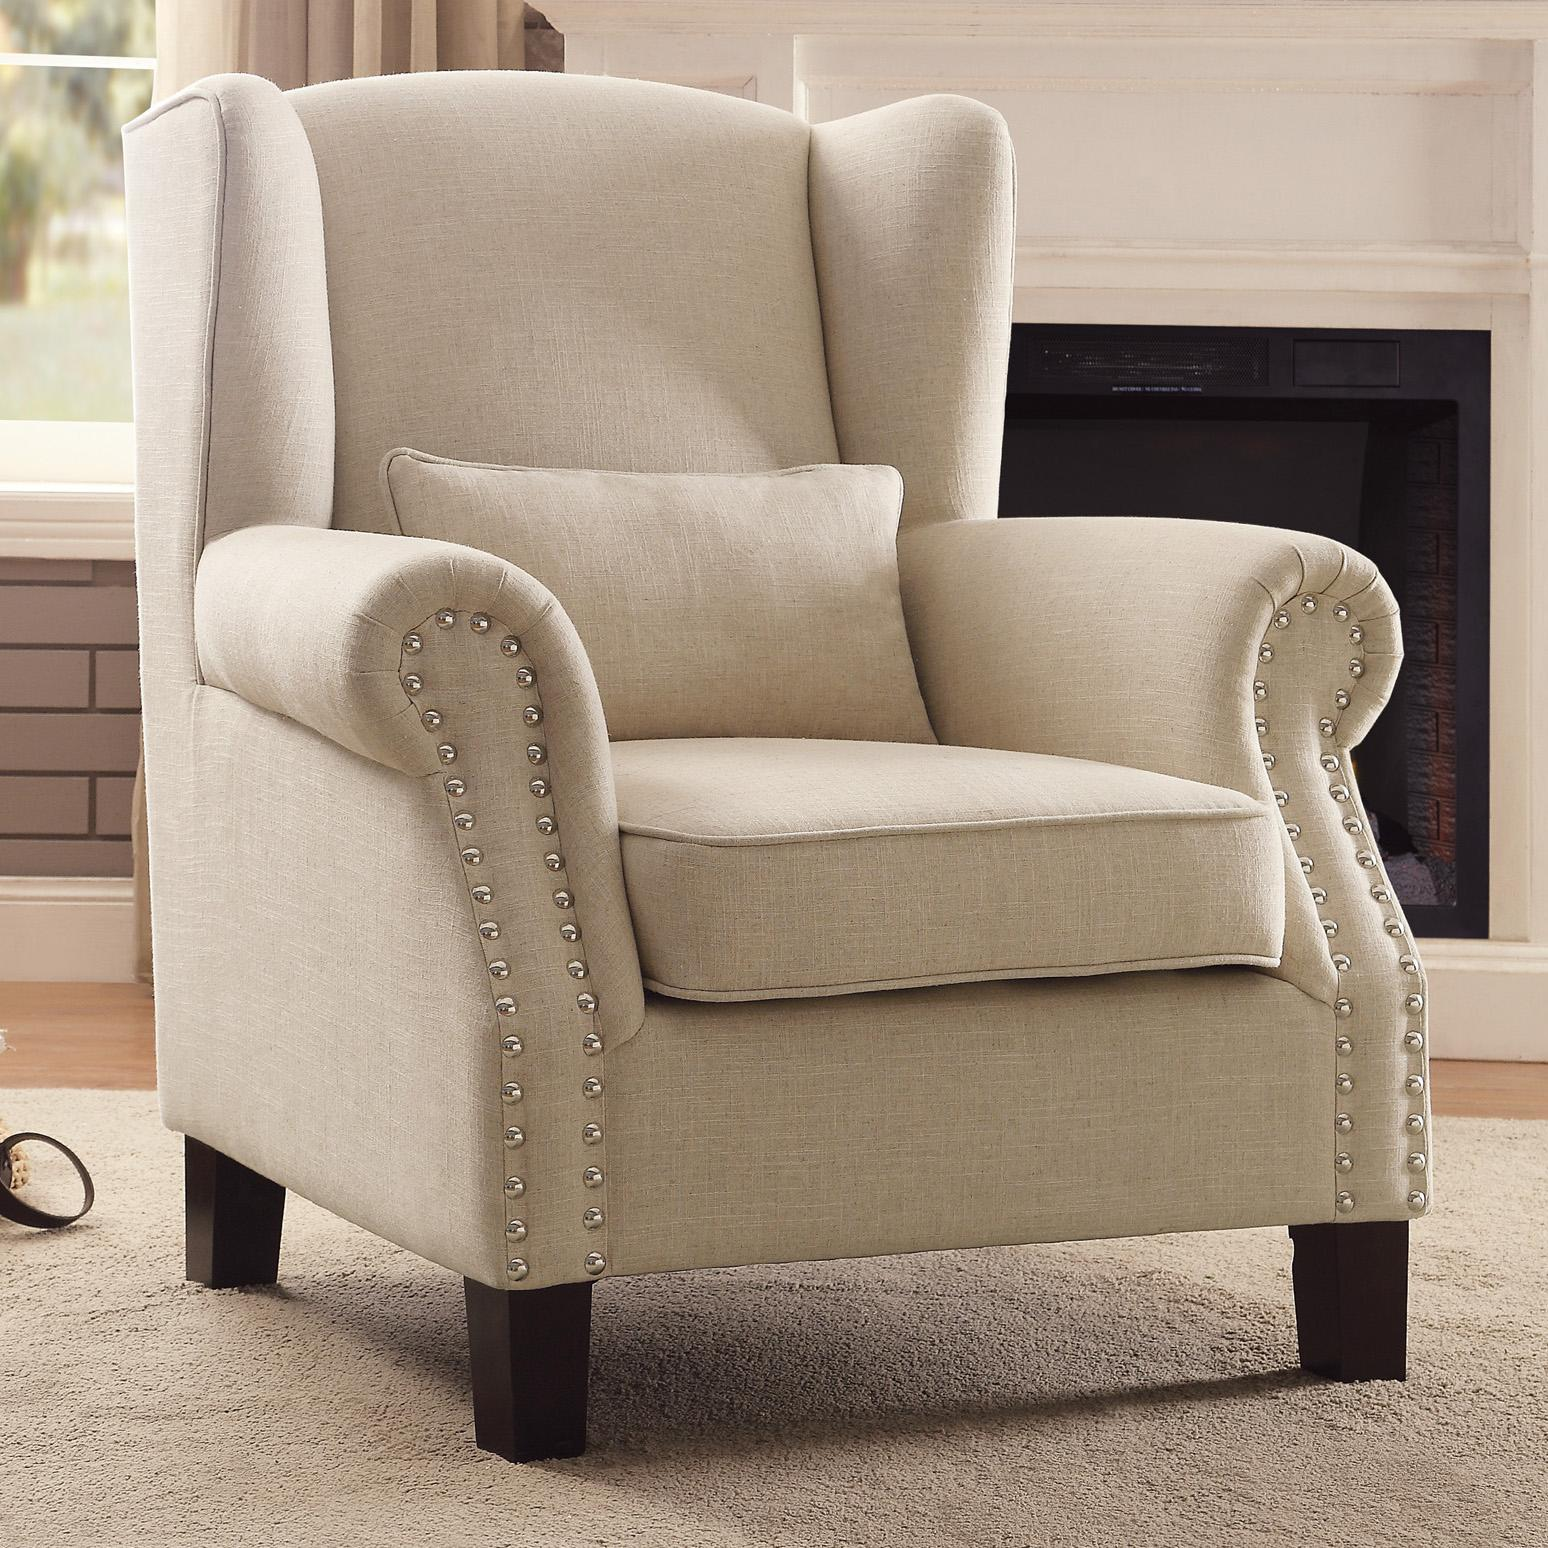 cream colored wingback chairs homelegance adelaide fabric upholstered 13594 | 931612de 26ca 4480 92e3 d35689a7c9bc